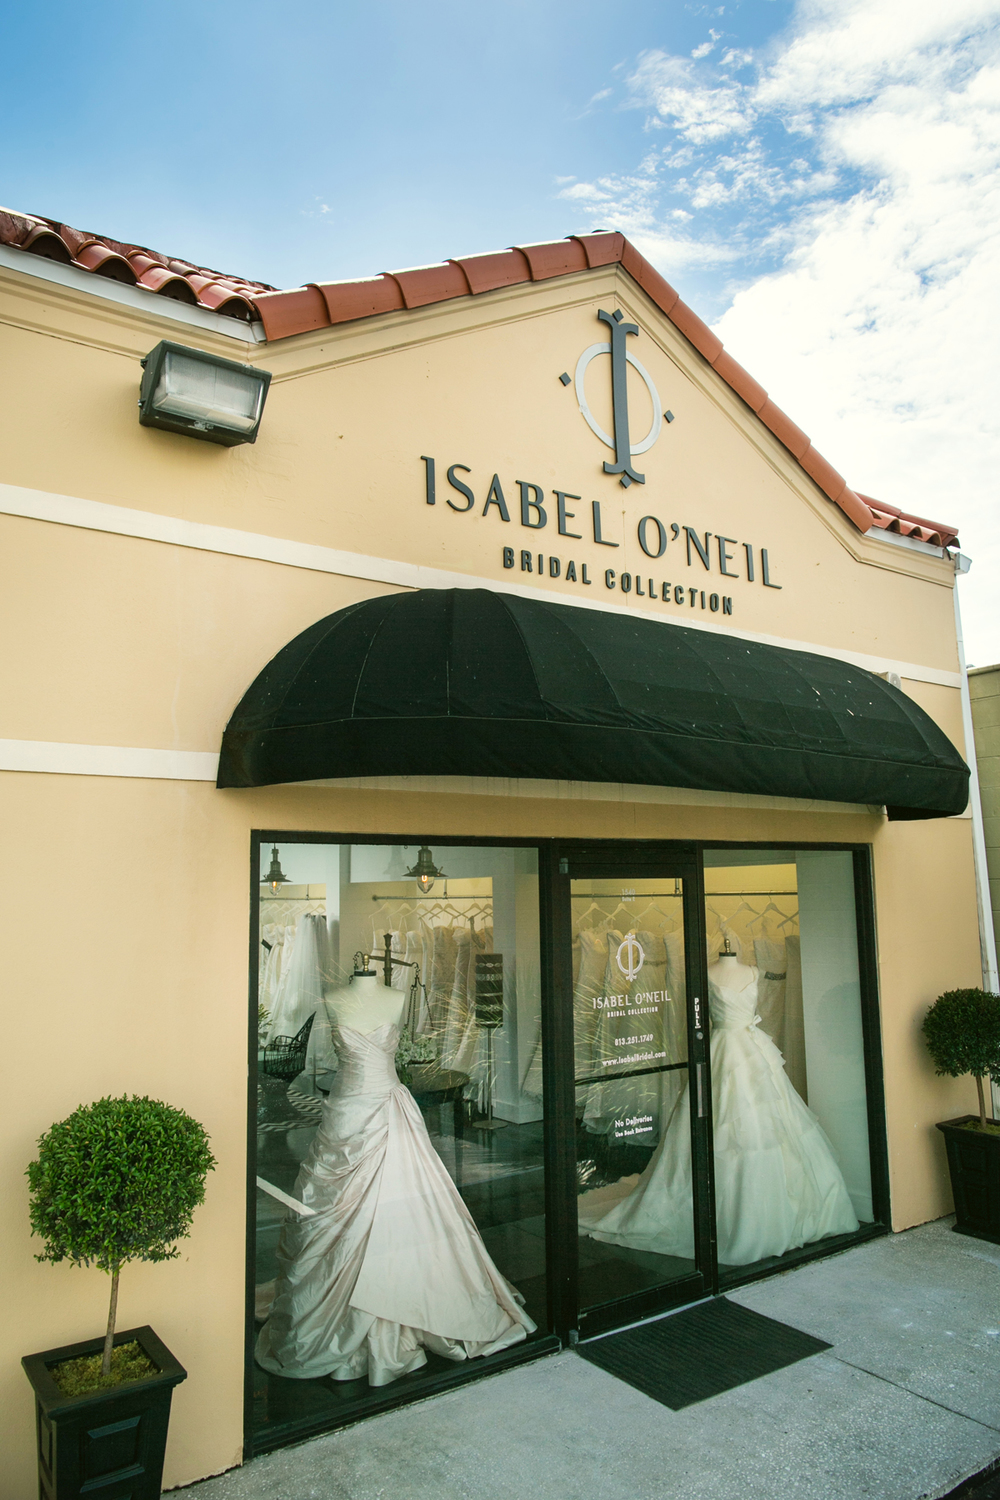 Gallery Isabel Oneil Bridal Collection Tampas Most Stylish